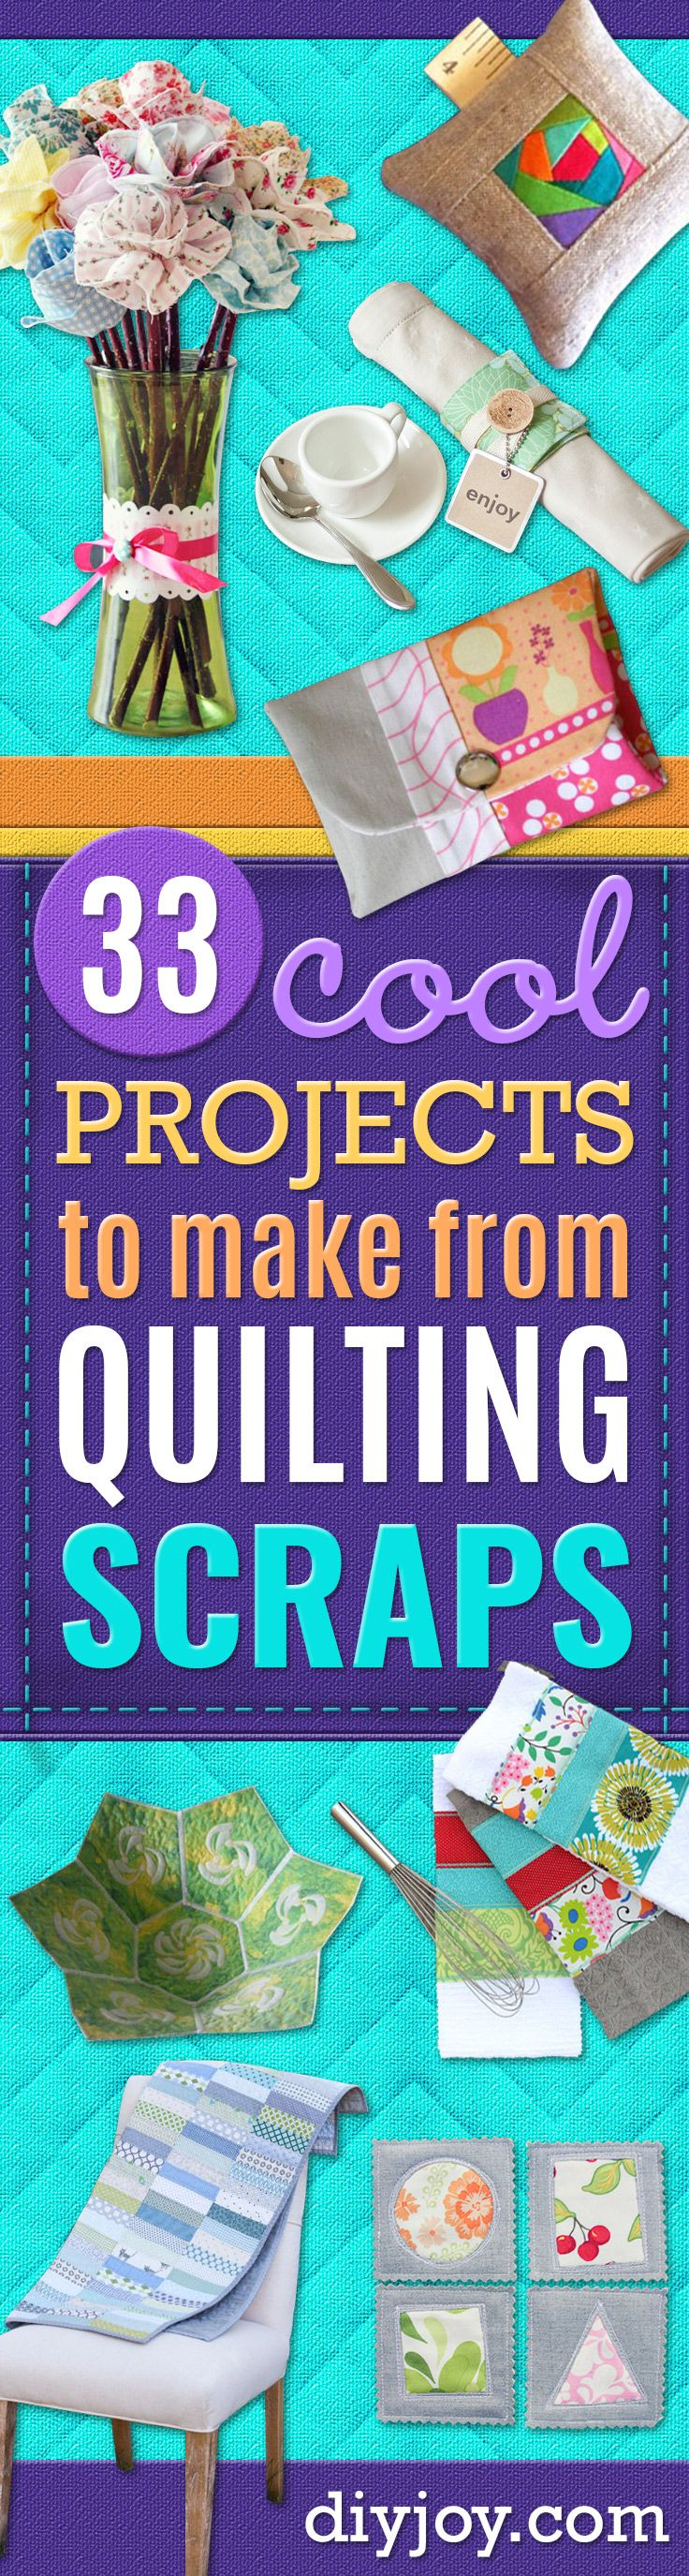 98 best free sewing projects images on pinterest sewing crafts